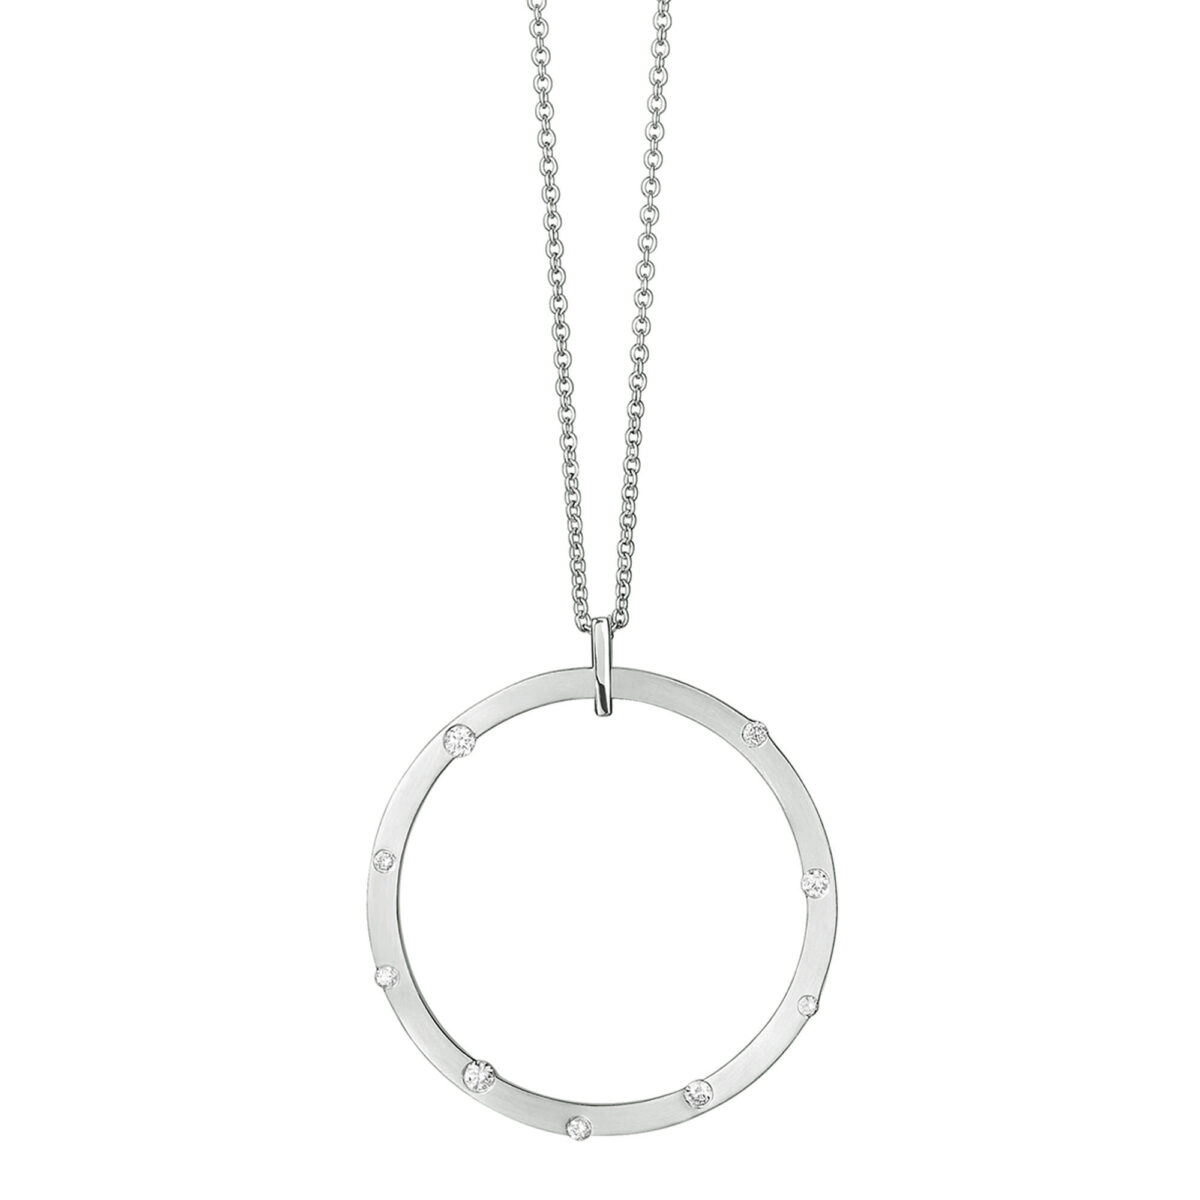 product/c/l/cloud-nine-large-silver-necklace-1_1.jpg;;product/c/l/cloud-nine-rose-gold-necklace-3_3.jpg;;product/d/m/dmr-packaging_55.jpg